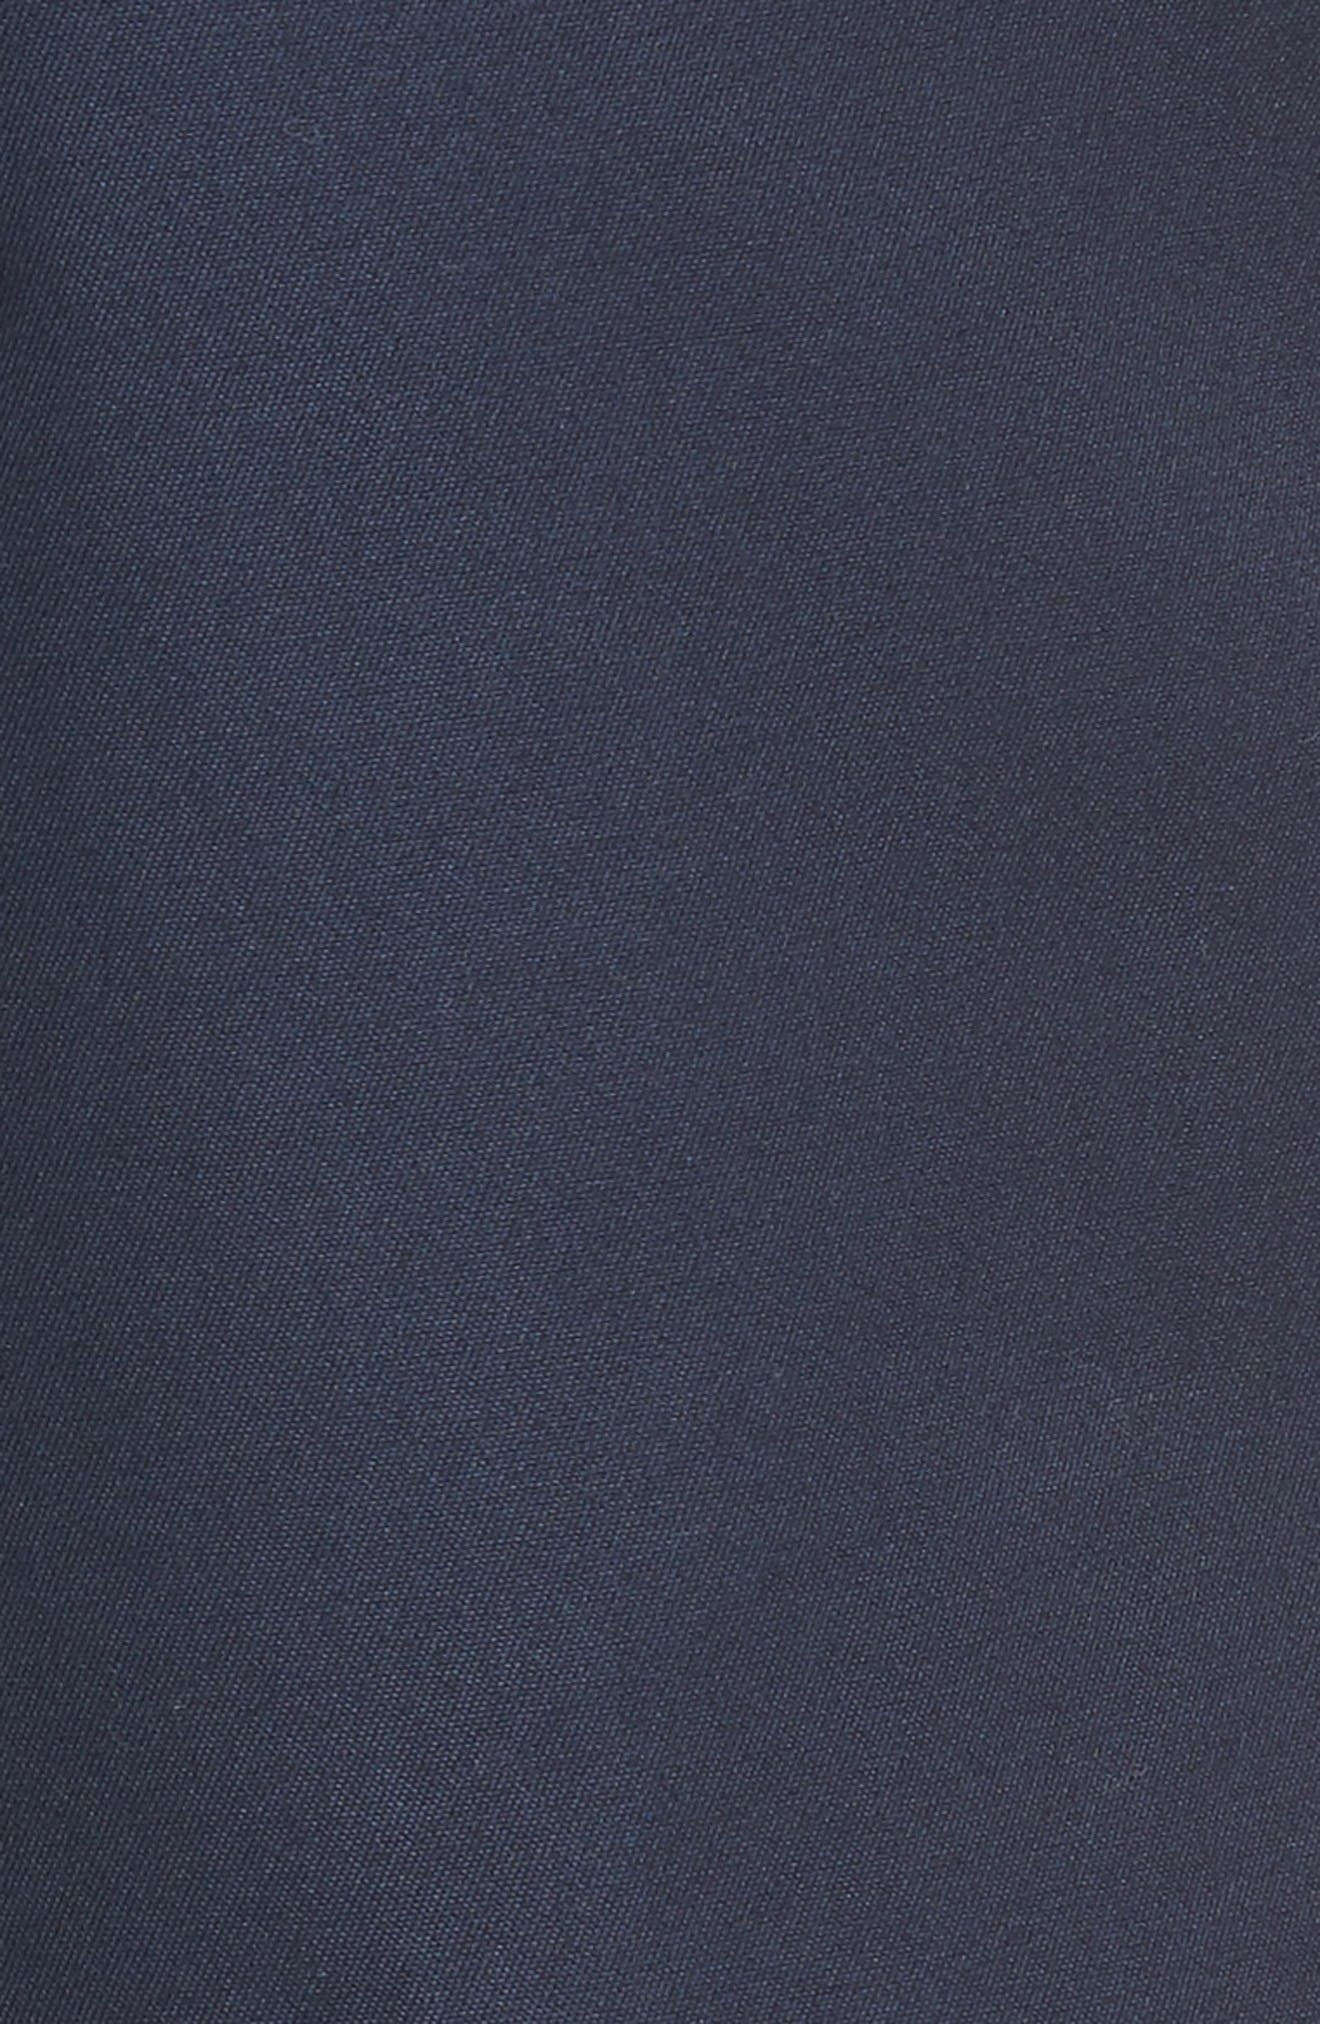 Flat Front Supima<sup>®</sup> Cotton Shorts,                             Alternate thumbnail 5, color,                             Navy Eclipse